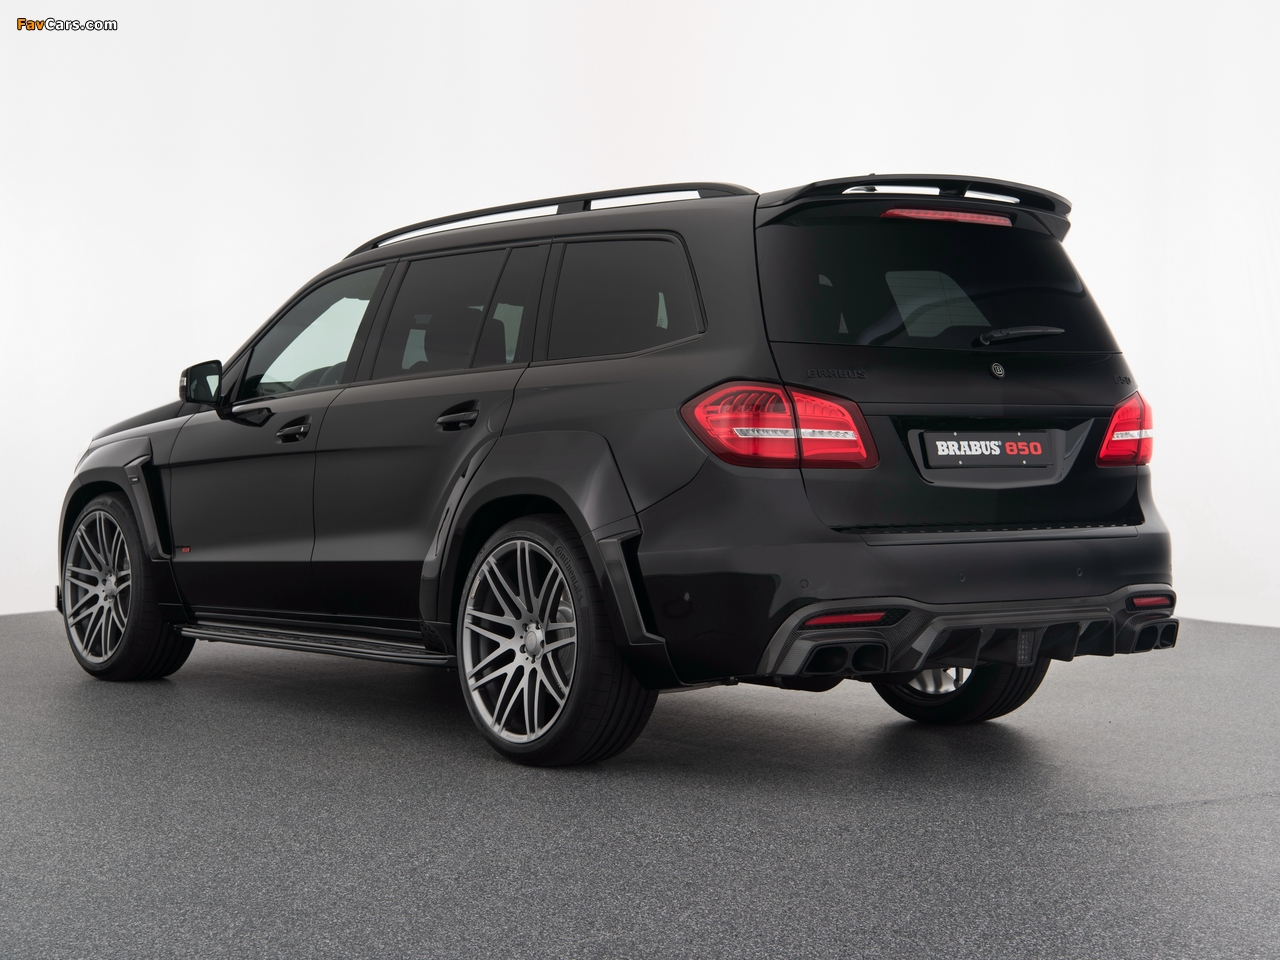 Pictures Of Brabus 850 Xl X166 2016 1280x960